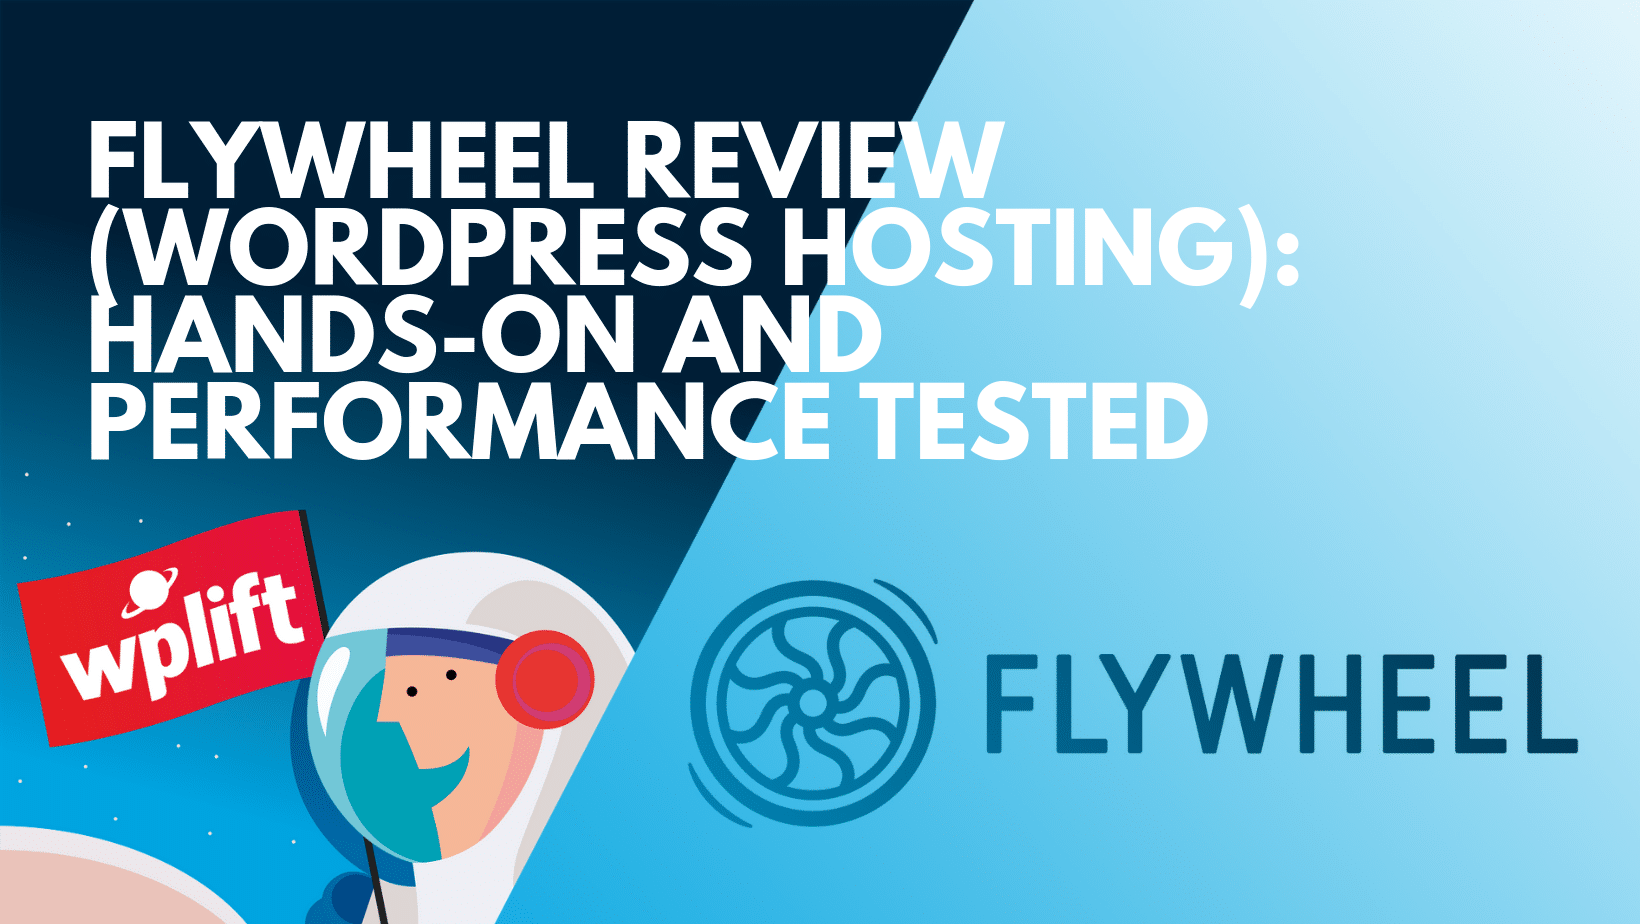 Flywheel Review (WordPress Hosting): Hands-On and Performance Tested